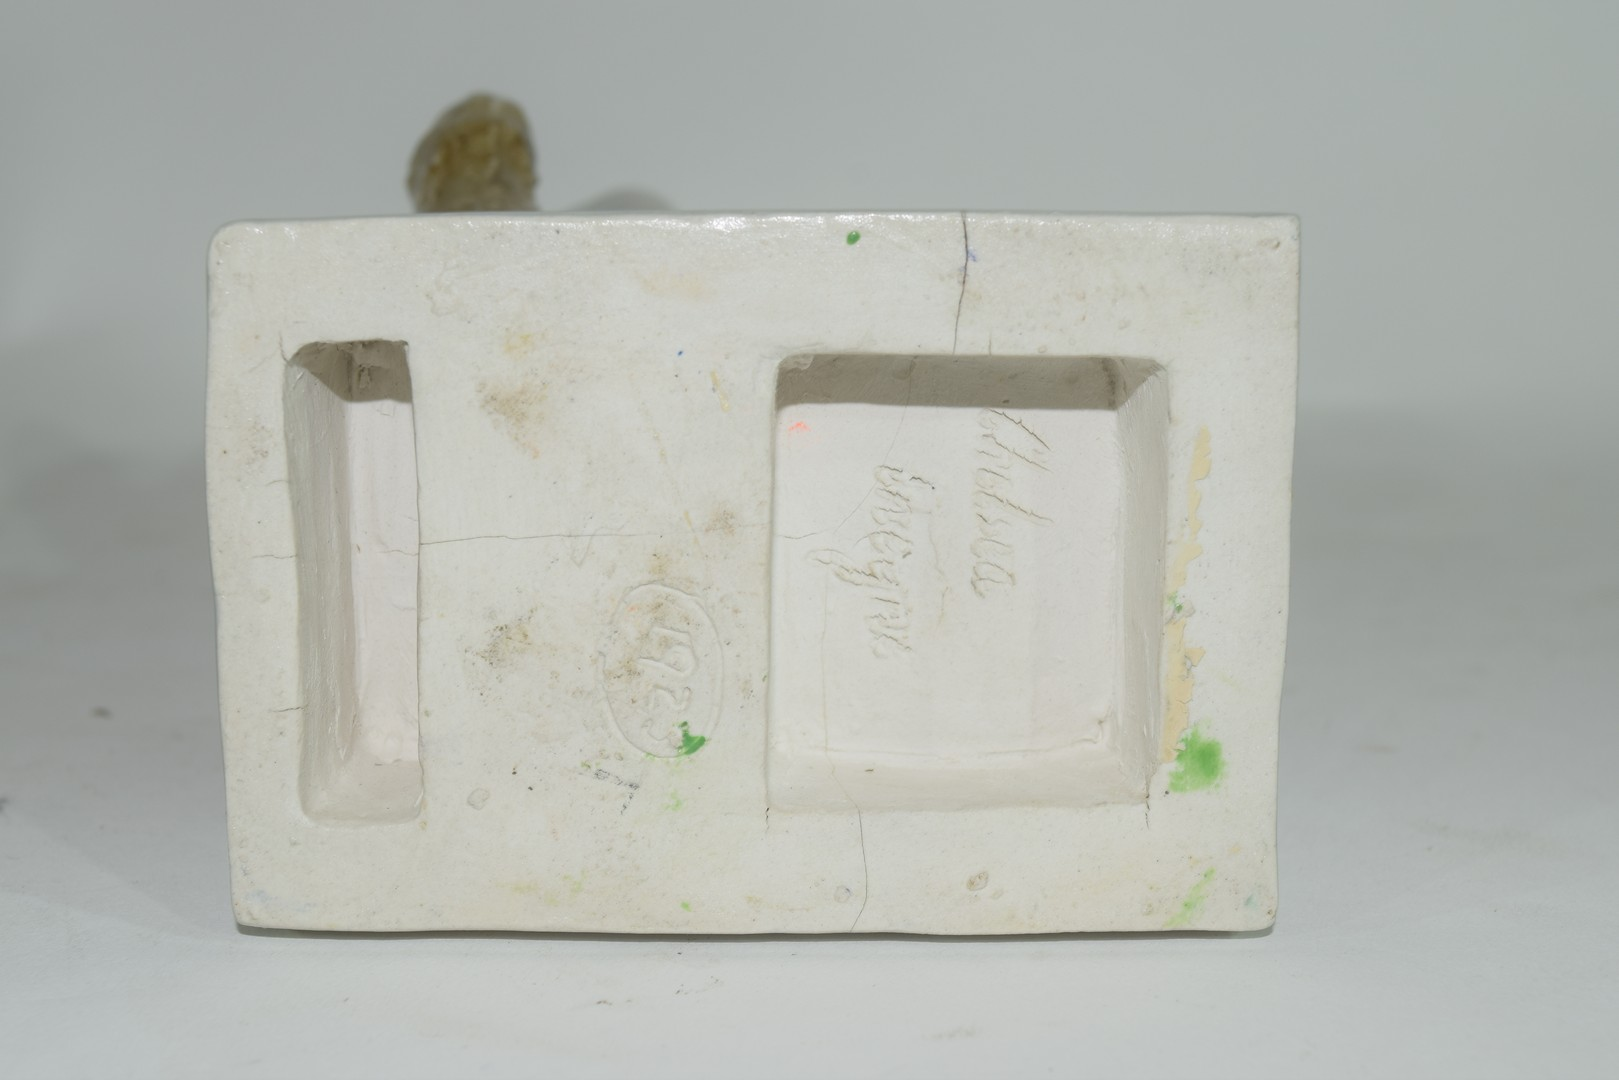 Chelsea Pottery model of a young boy - Image 6 of 6